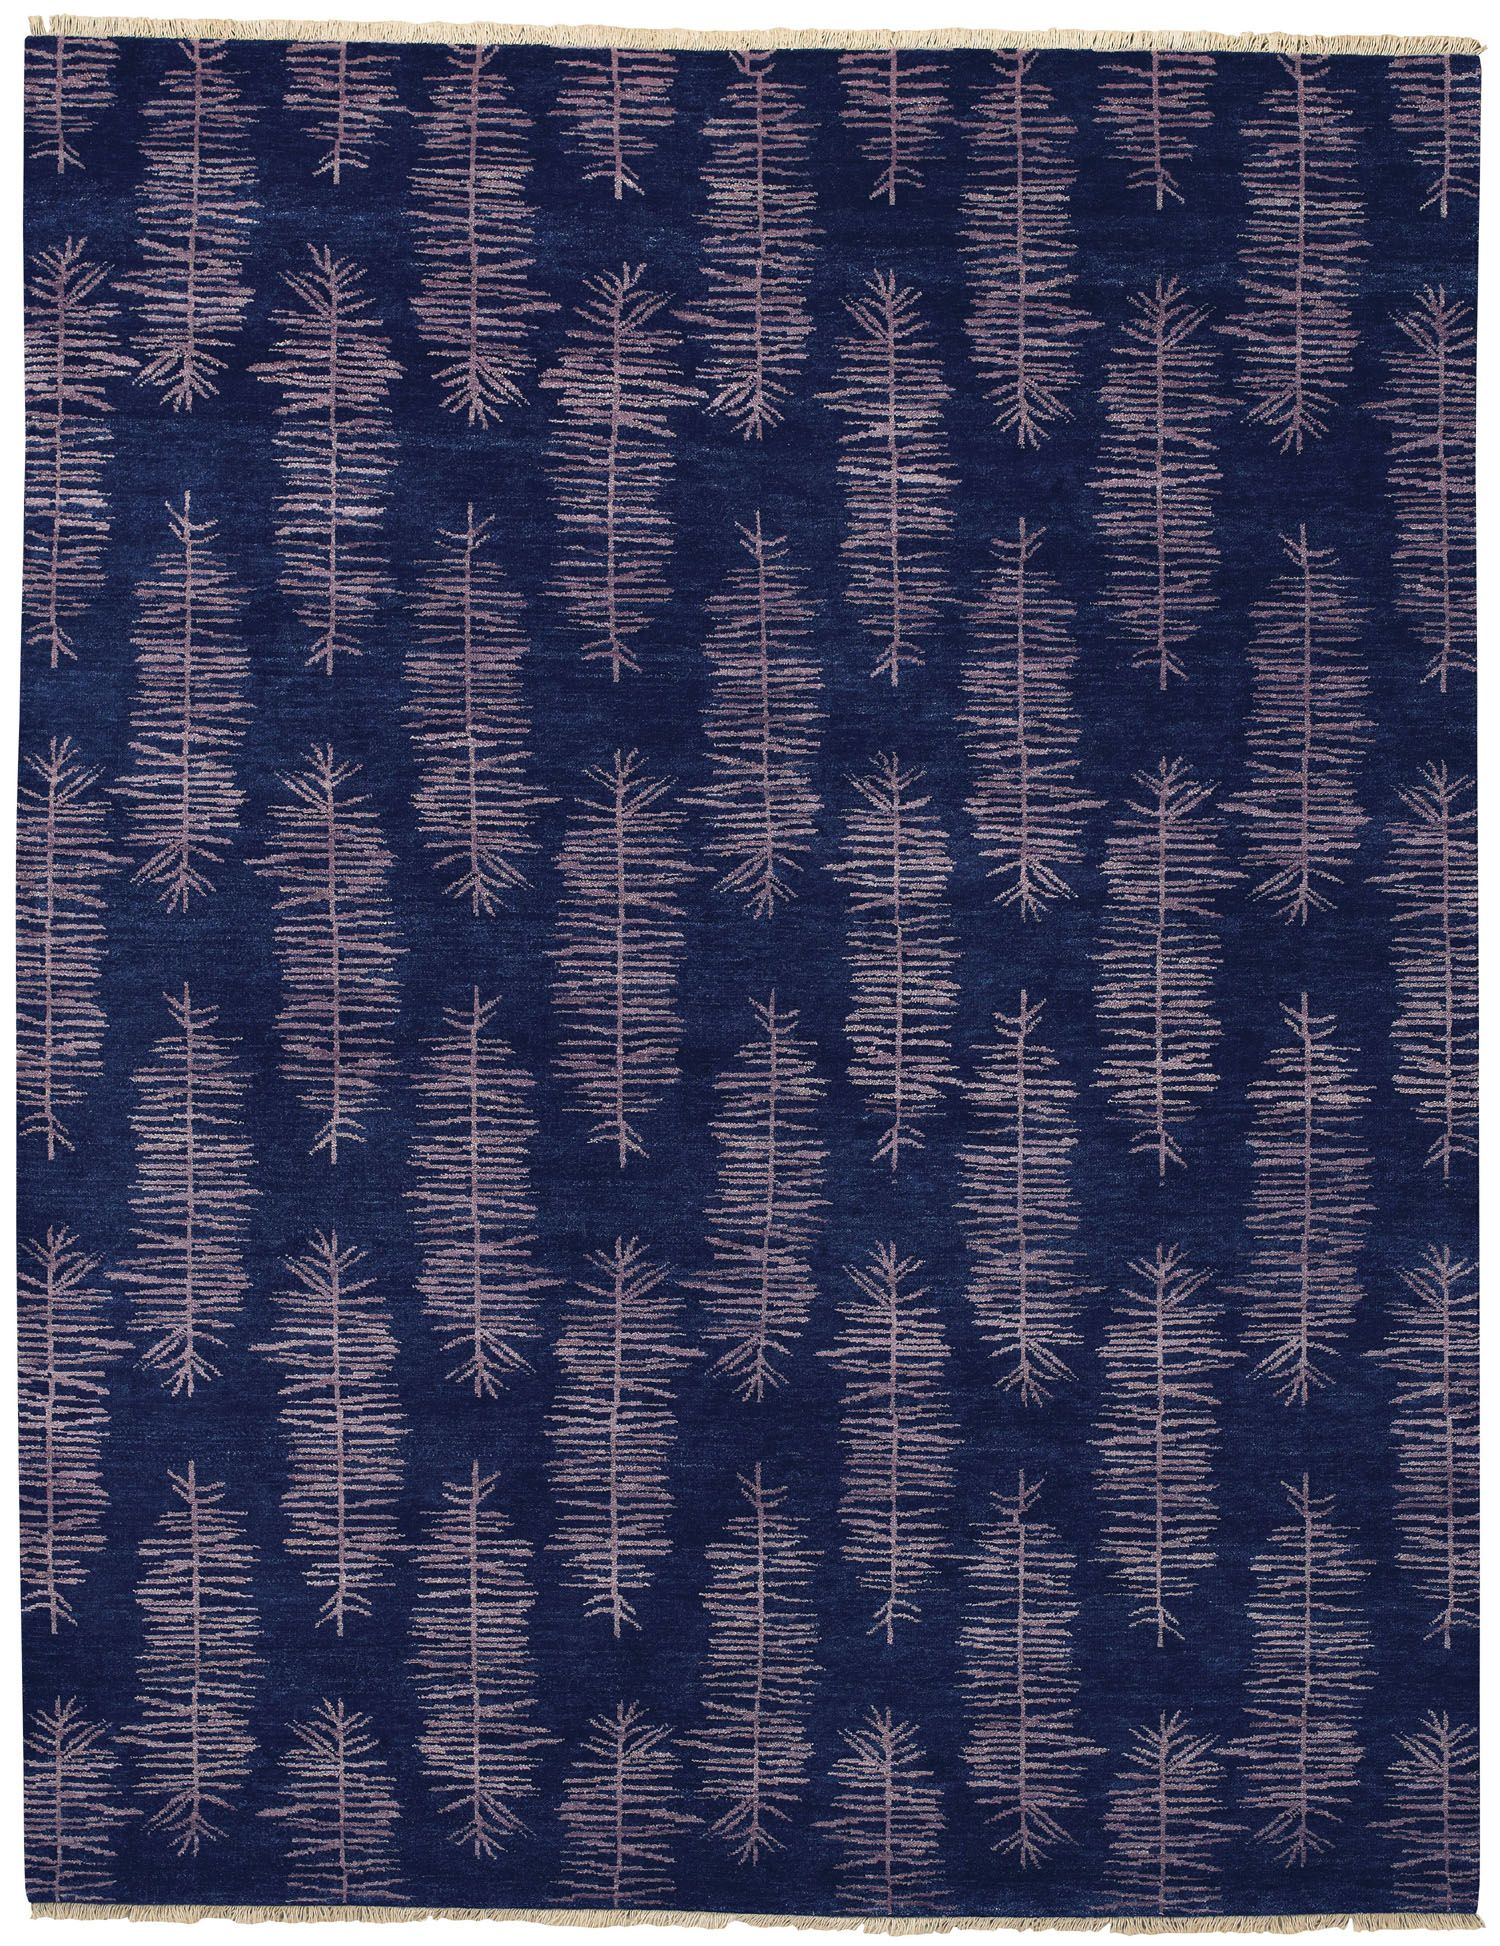 Aspen Midnight Blue Rug [humanely sheered wool version] | My ...